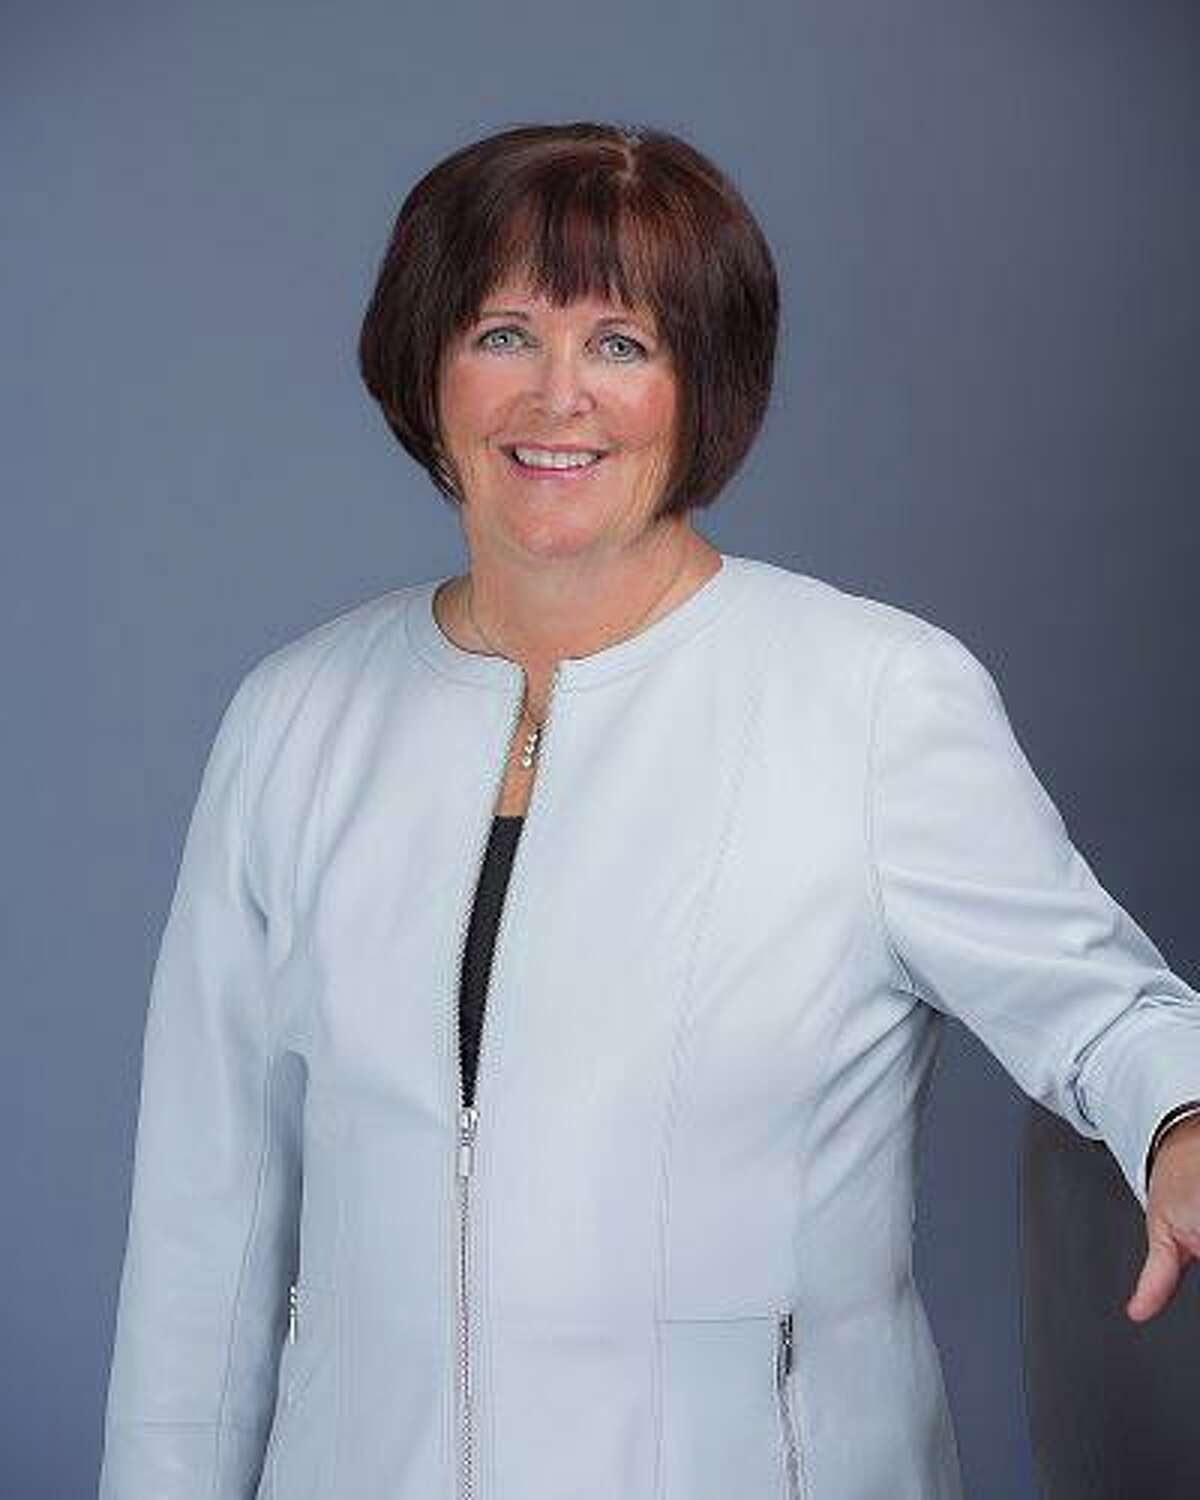 Margaret Keane is the executive chairwoman of Synchrony. She retired as CEO in April 2021.